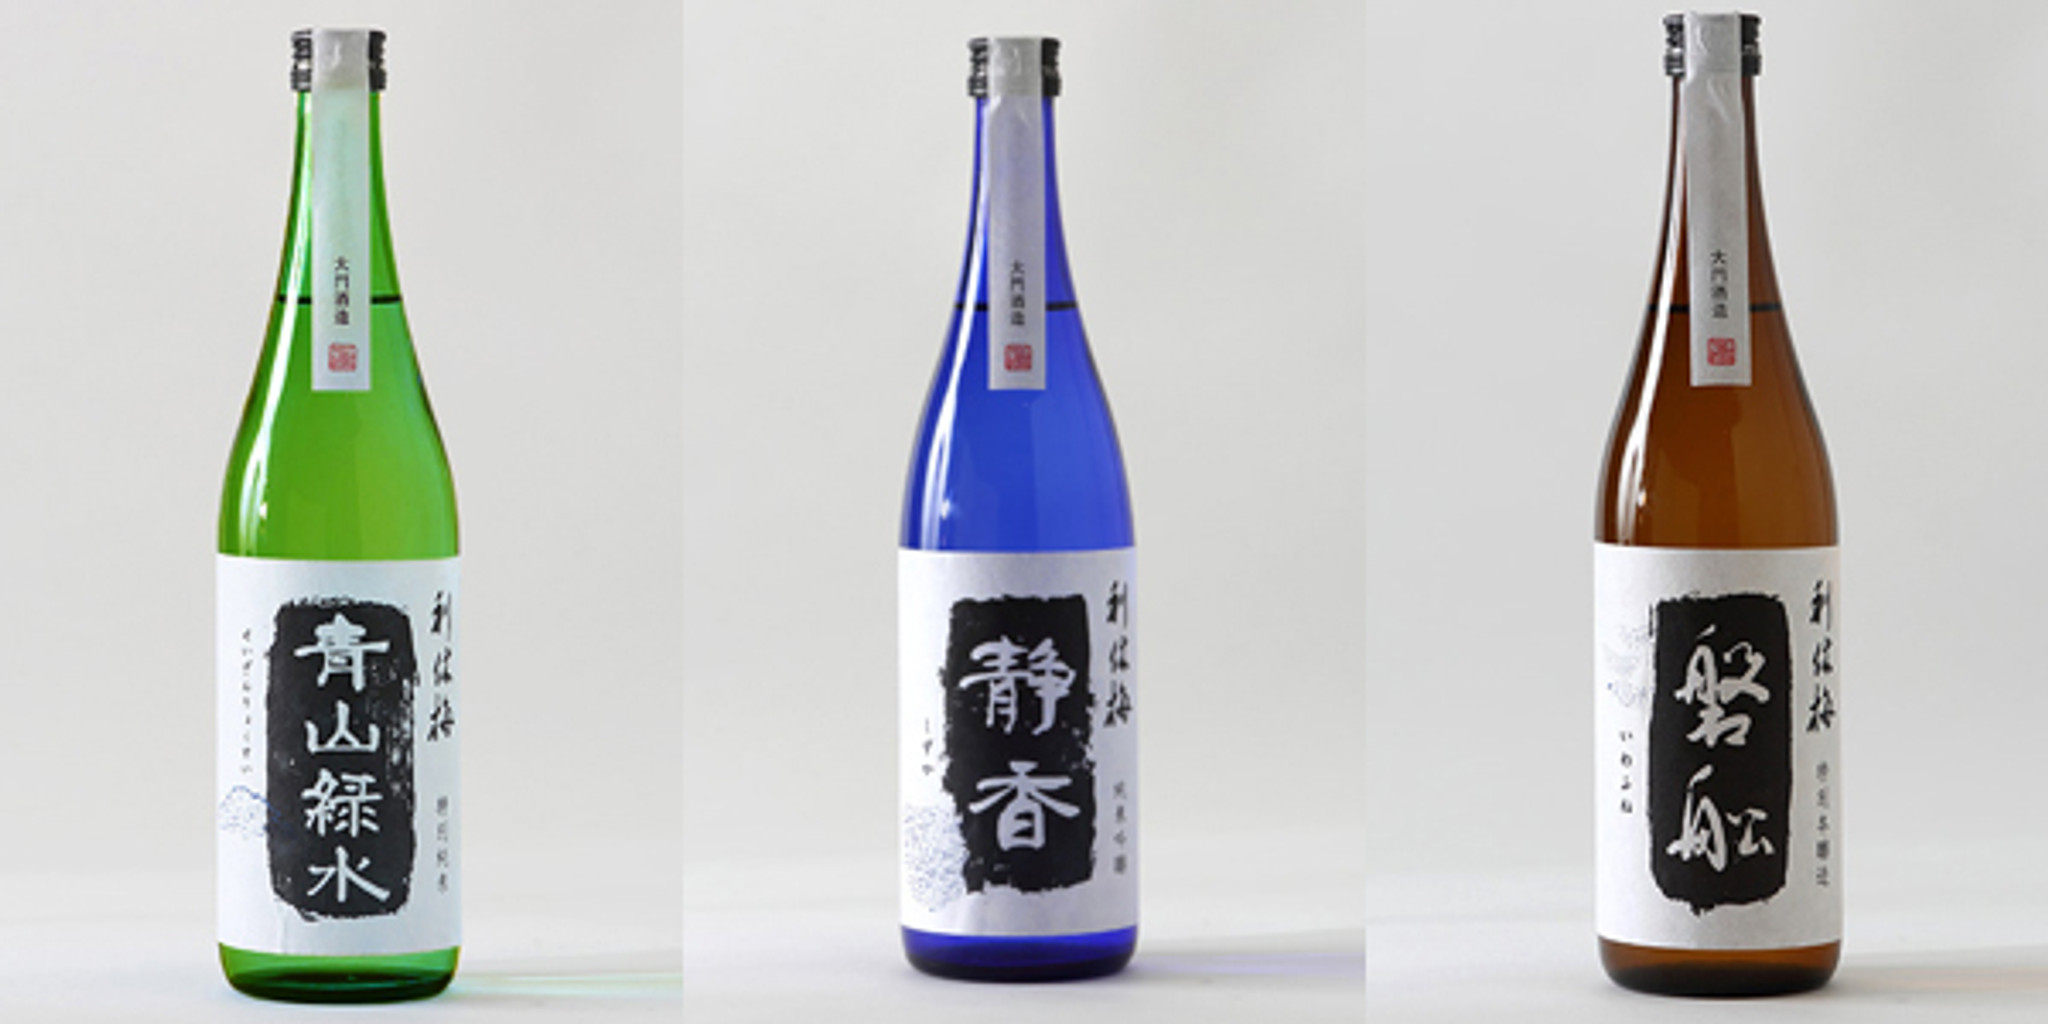 Sake from Daimon Brewery